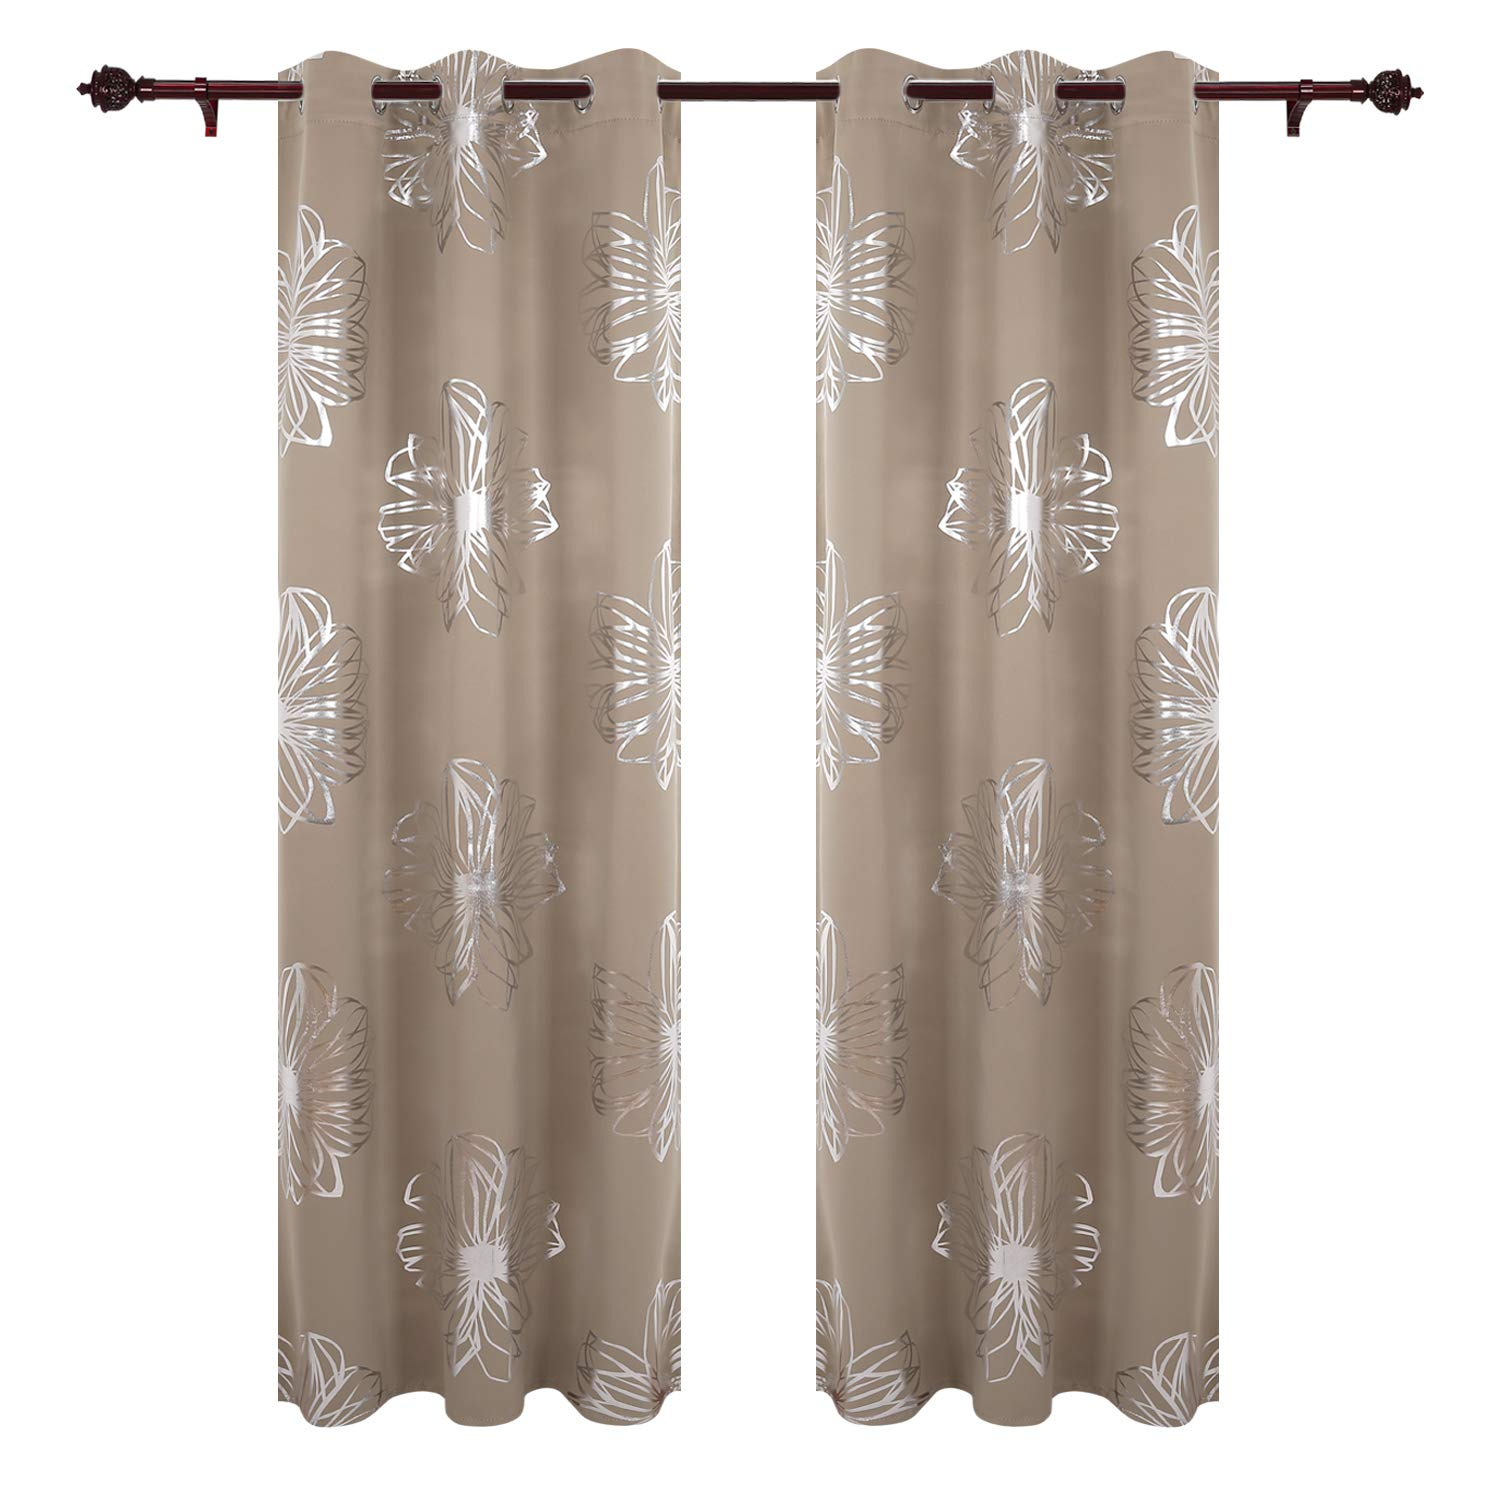 Deconovo Home Decoration Foil Print Floral Curtains Eyelet Thermal Insulated Blackout Curtains for Kids Room 55x68in Beige 1 Pair